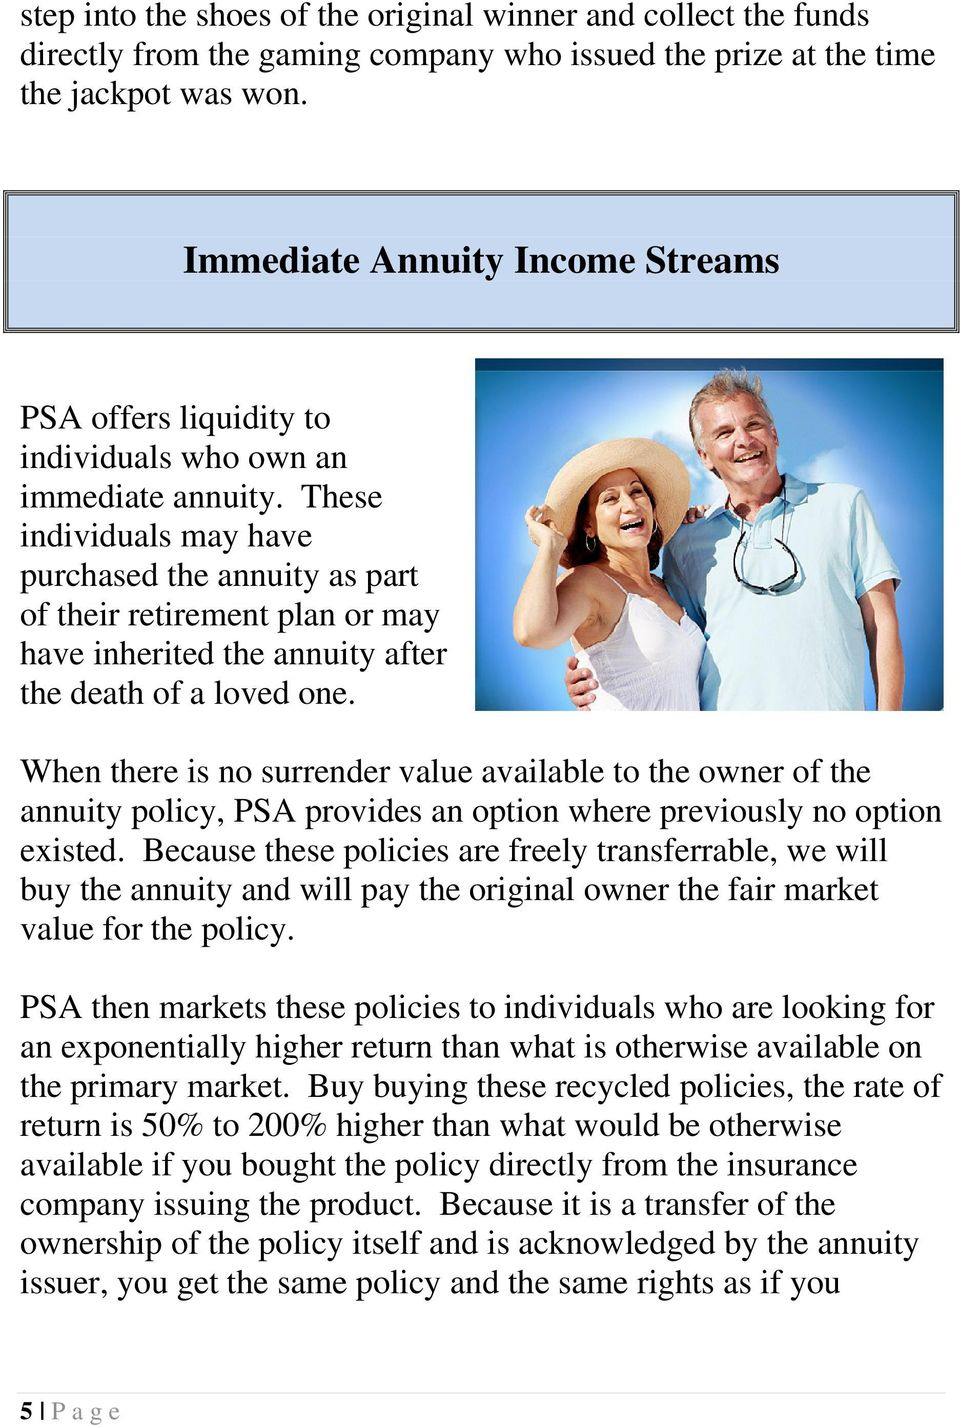 These individuals may have purchased the annuity as part of their retirement plan or may have inherited the annuity after the death of a loved one.